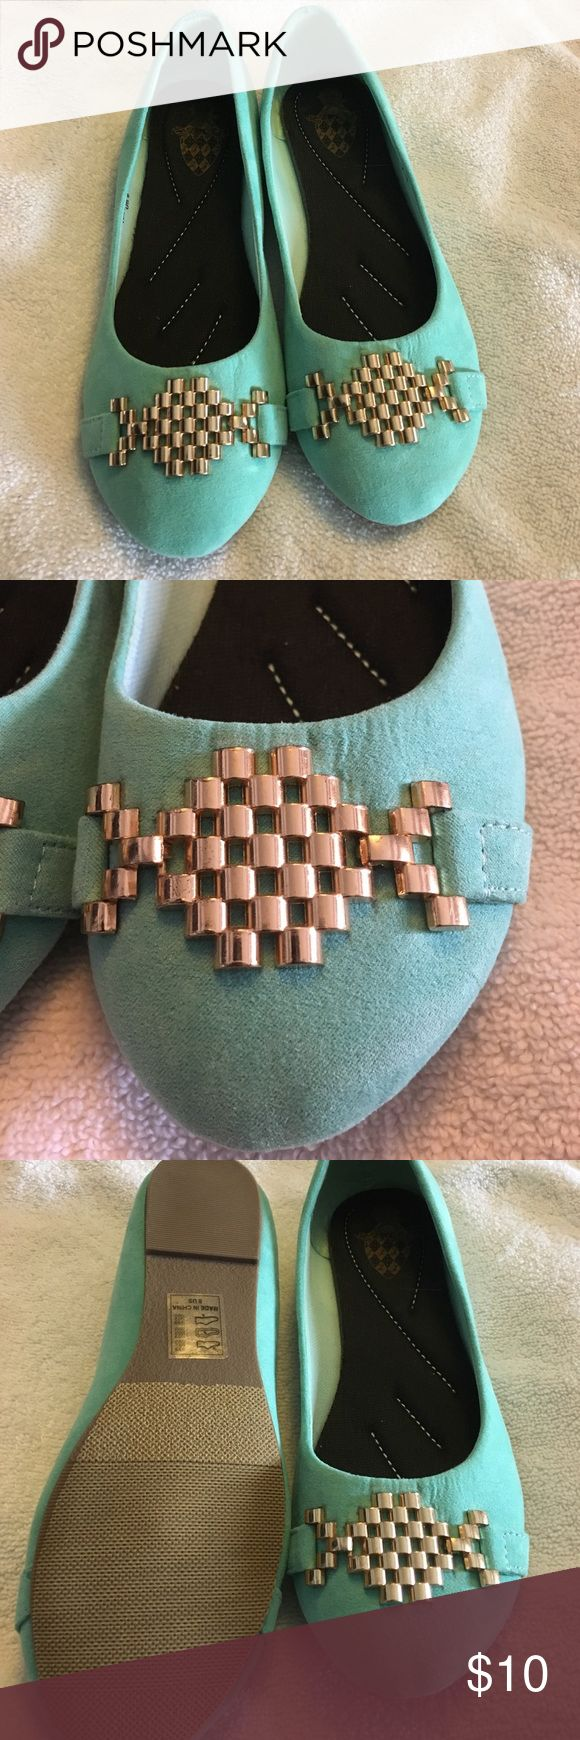 Cute teal flat shoe - size8 Cute real flat shoe Shoes Flats & Loafers